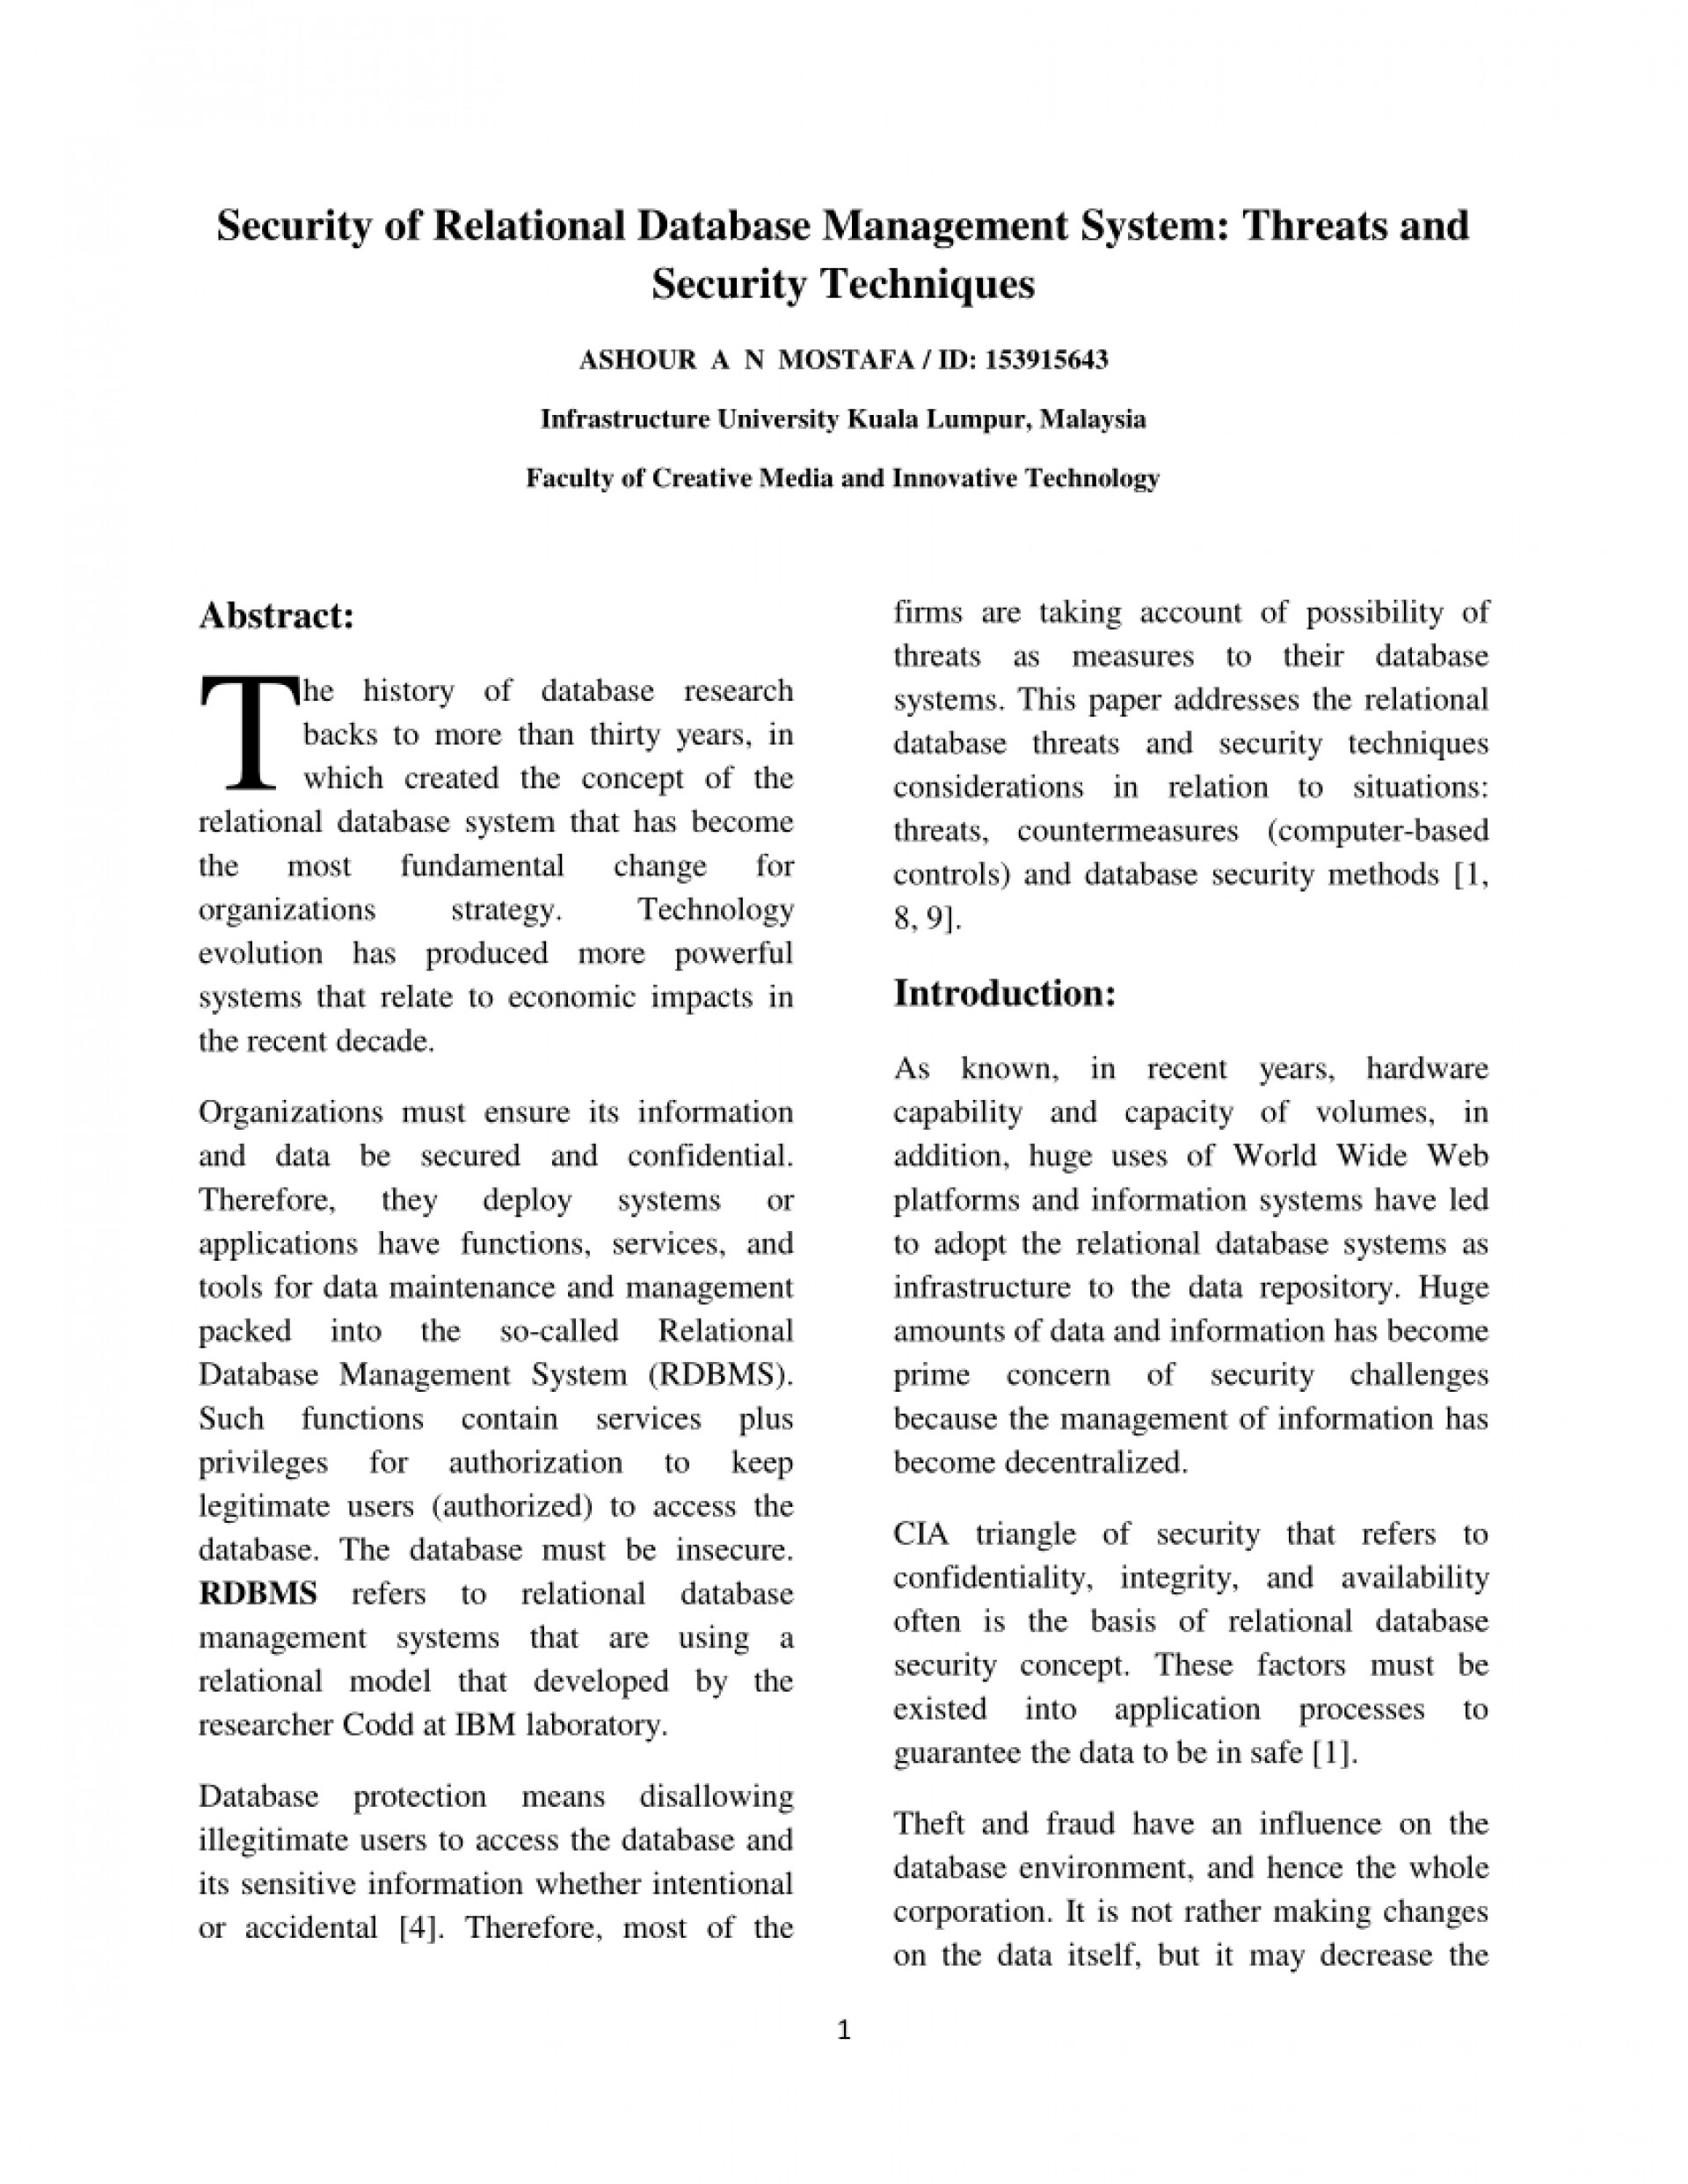 001 Research Paper Largepreview Database Security Frightening Papers Ieee Data - Draft 1920